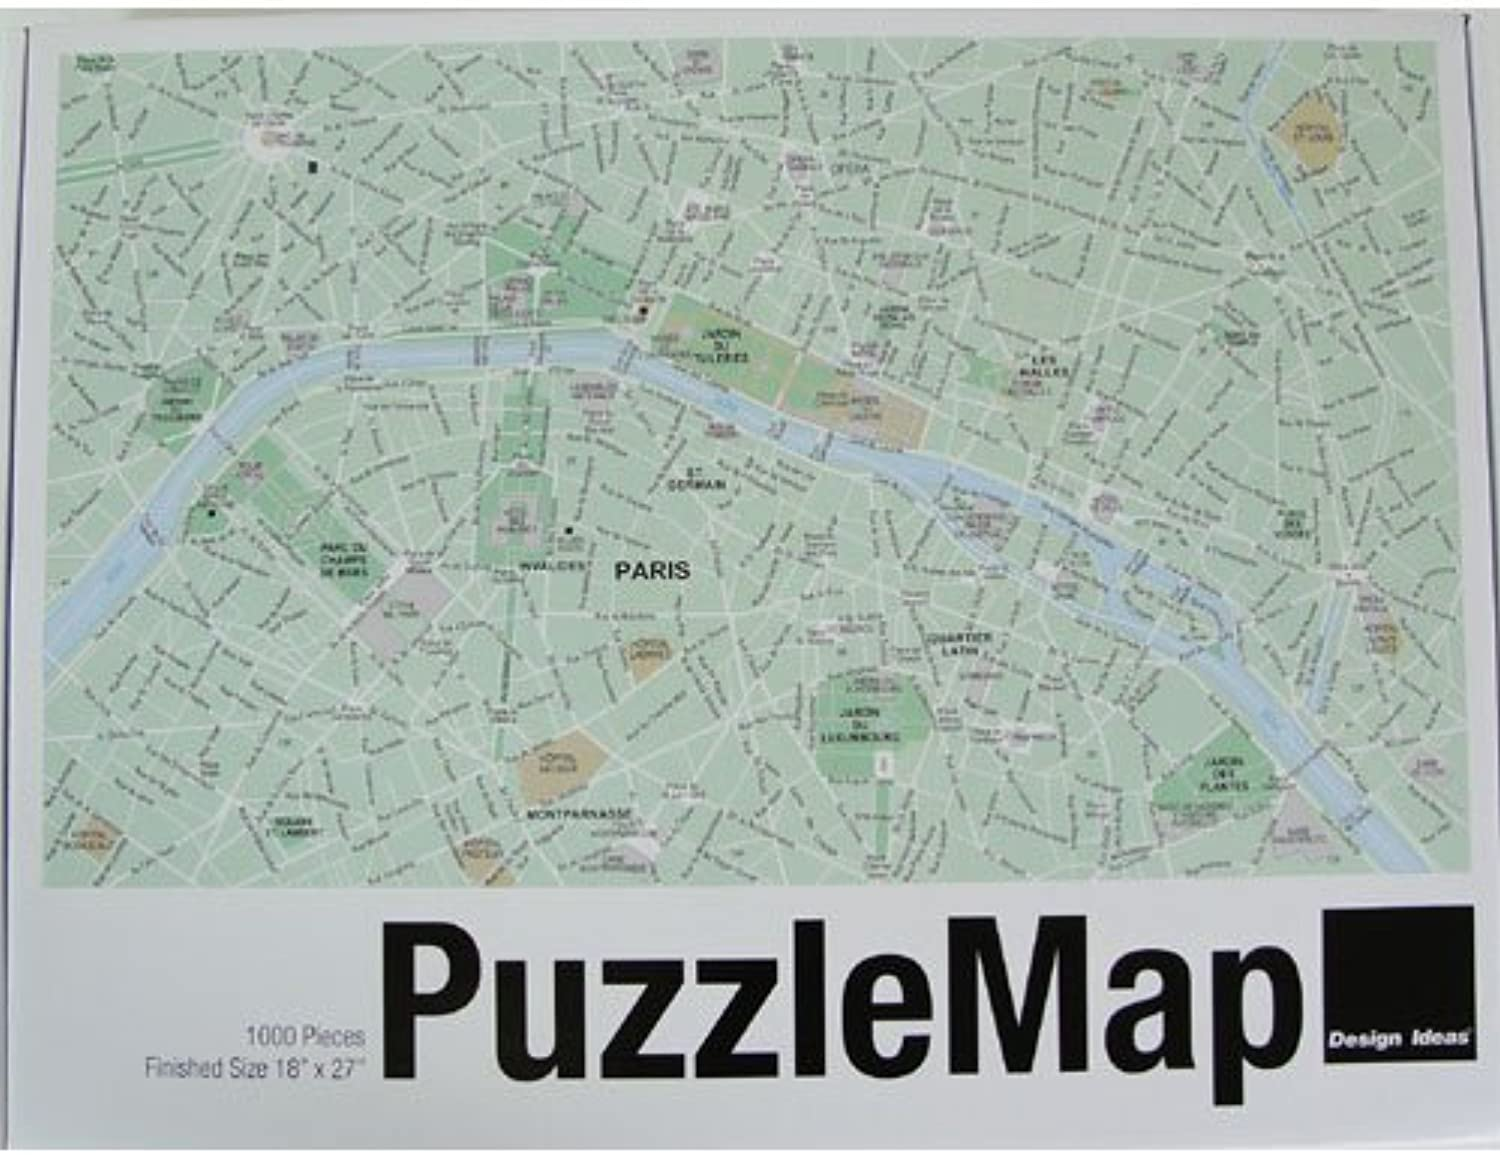 Design Ideas Puzzle Map, Paris